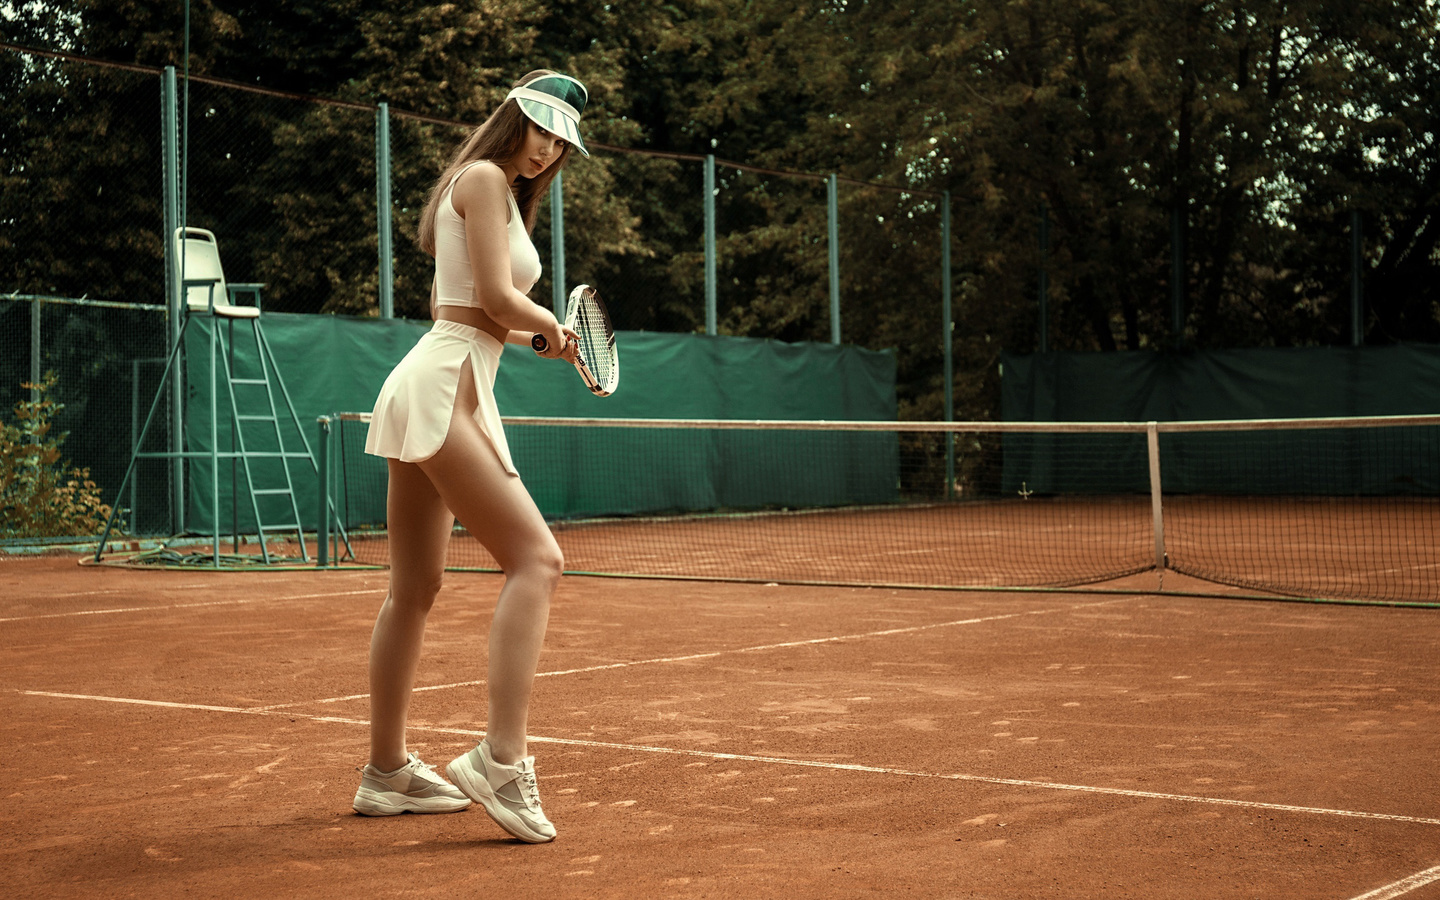 women, skirt, tennis, white clothing, sneakers, women outdoors, tennis rackets, tennis balls, sportswear, brunette